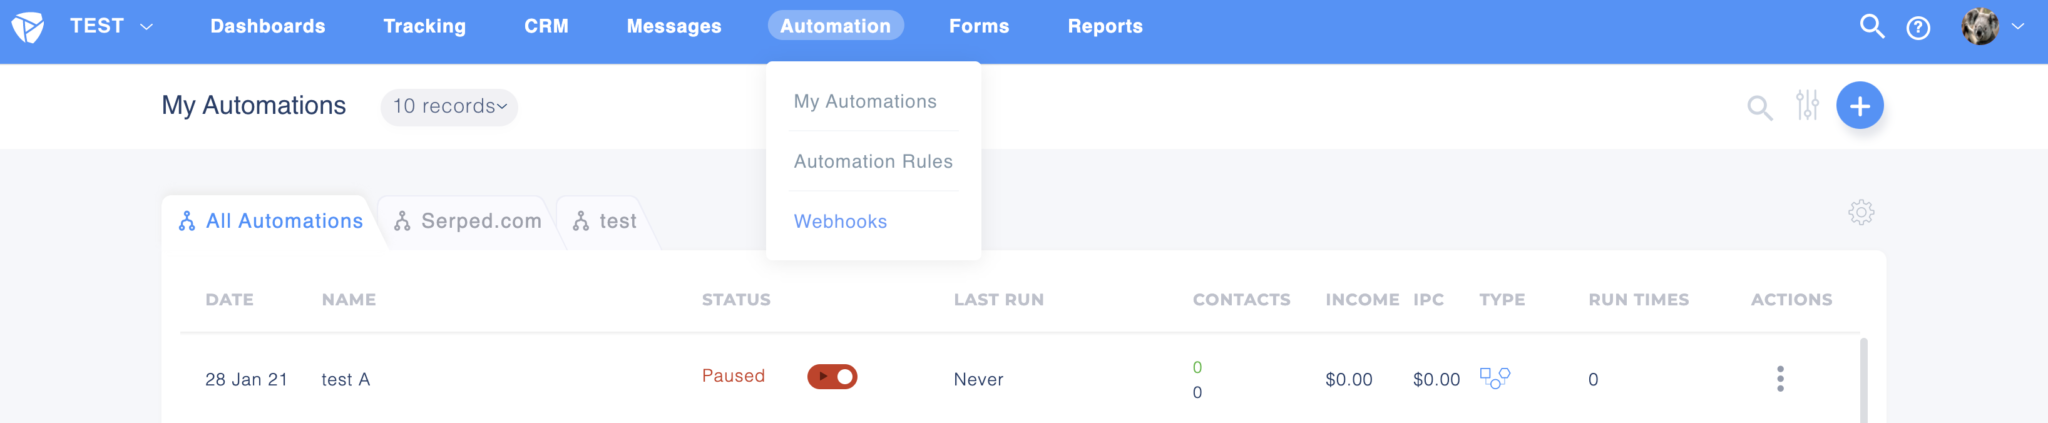 Automations and Webhooks